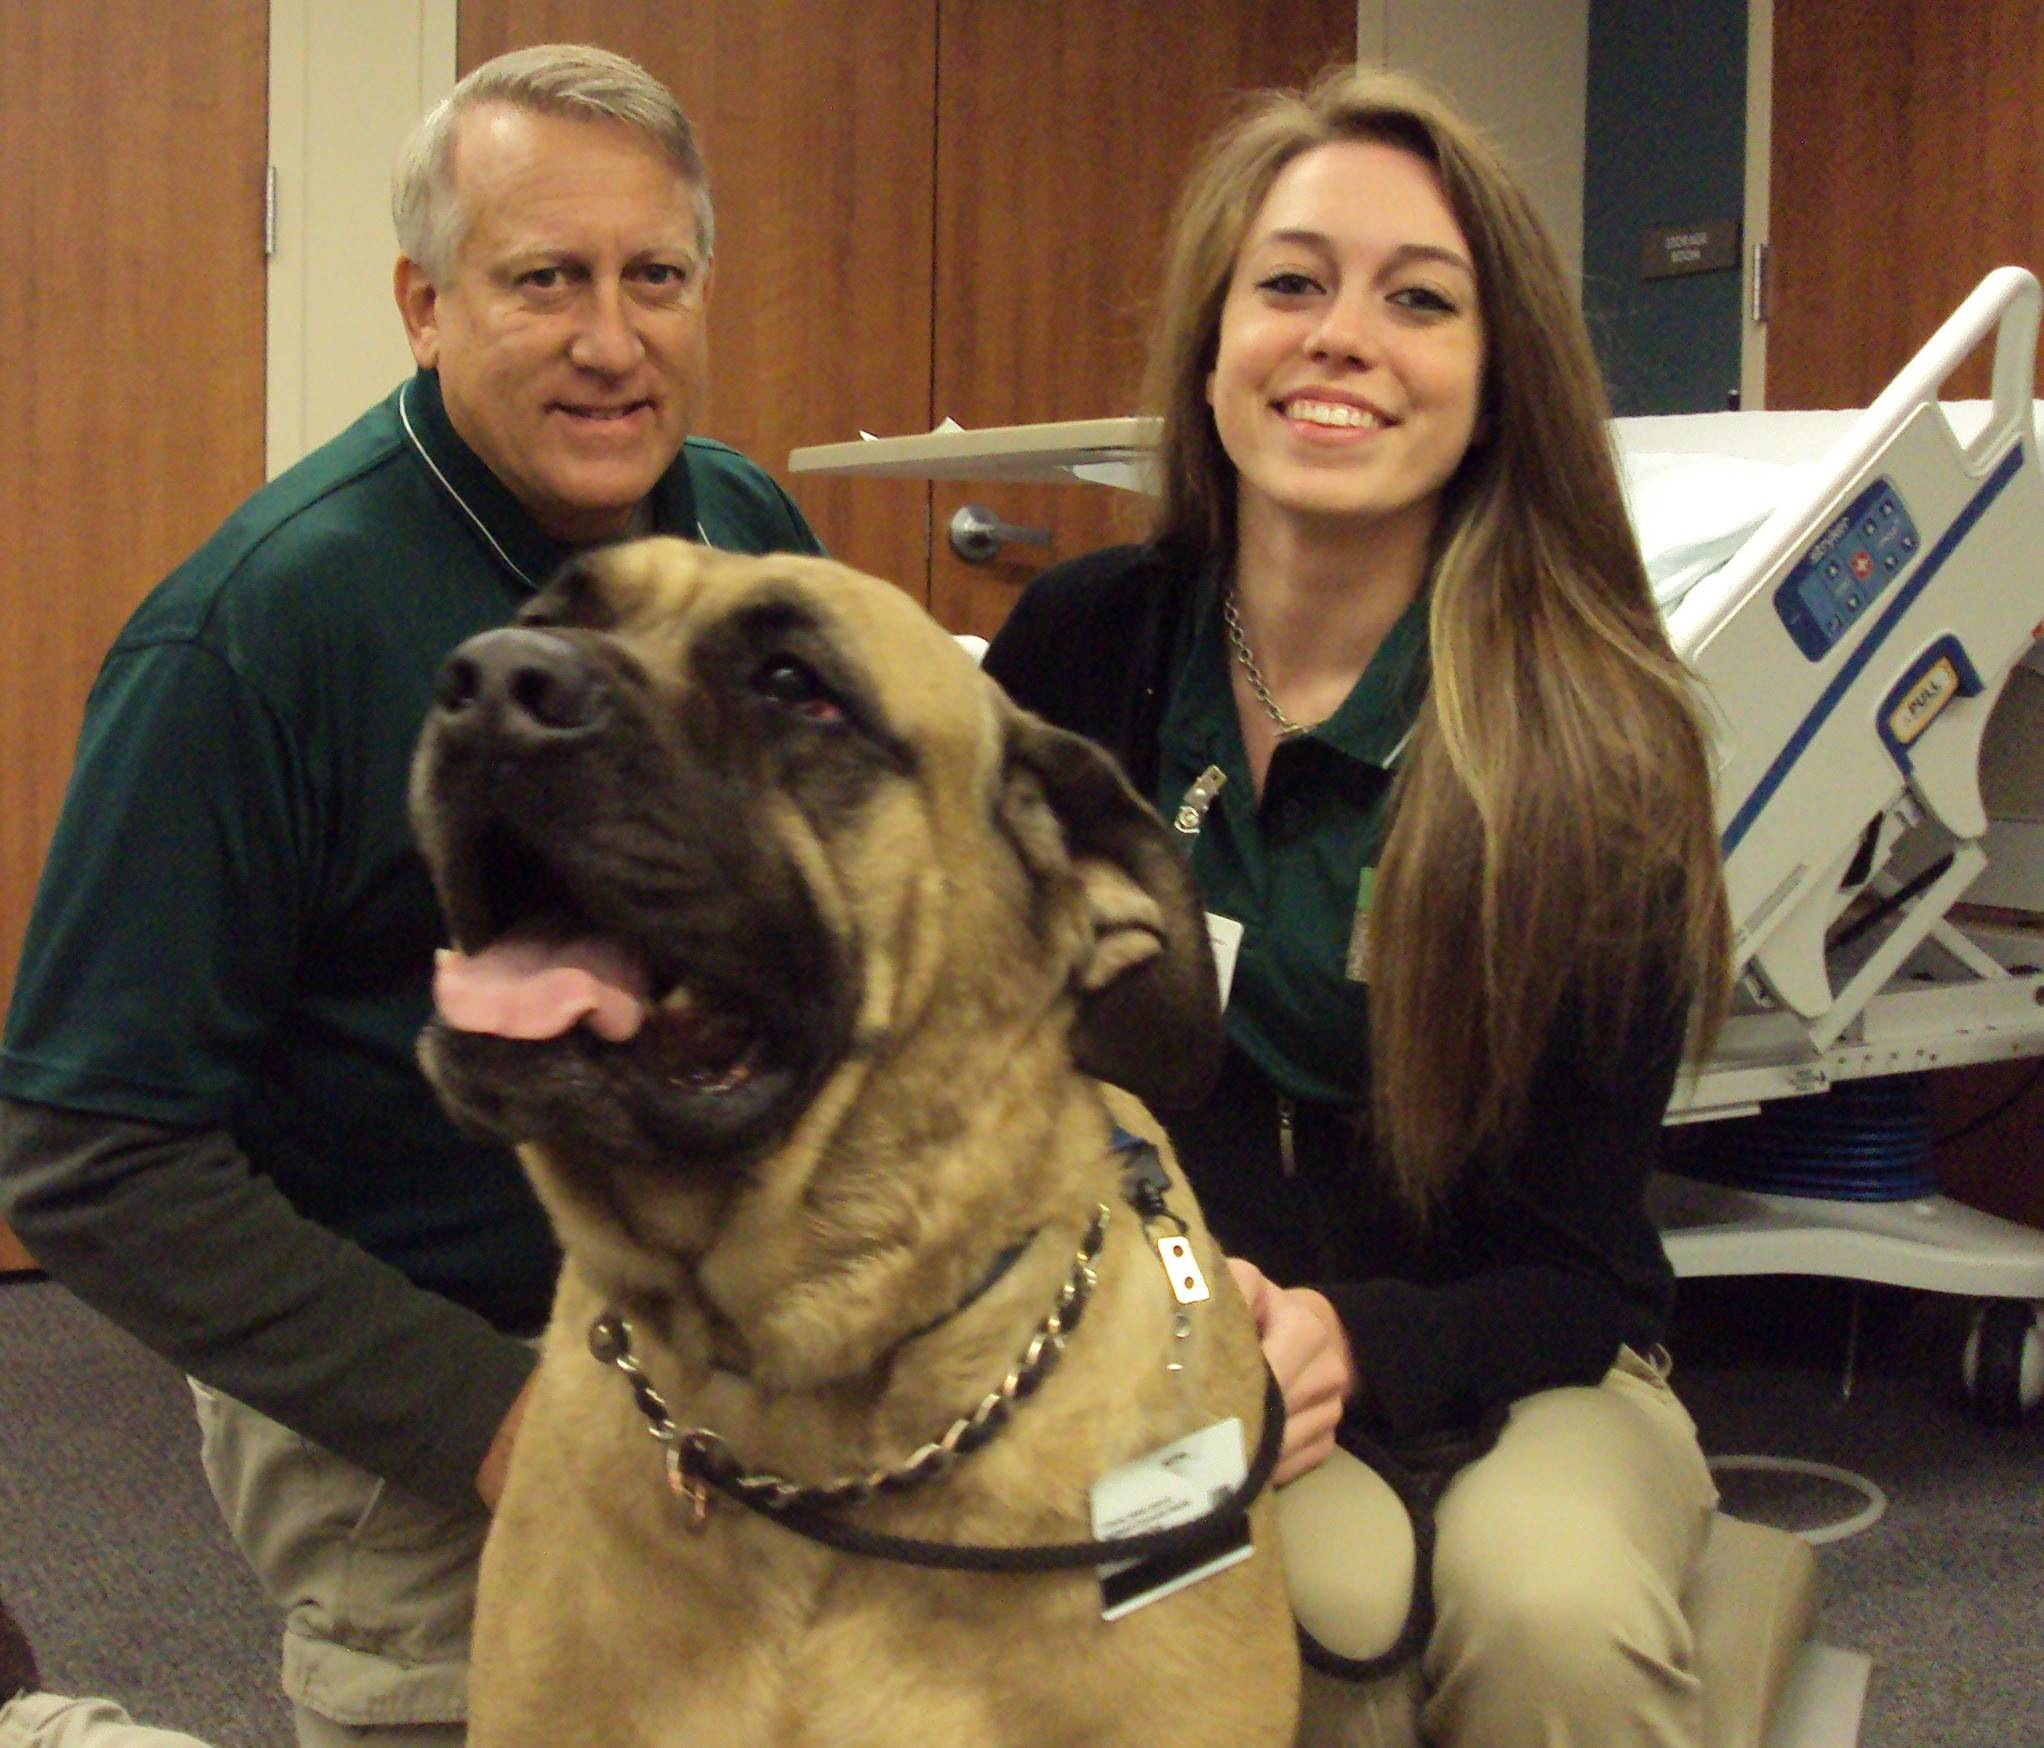 Father and daughter Jim and Colleen McKay, of Arlington Heights, with their African Mastiff Lenny, who is rarin' to go.